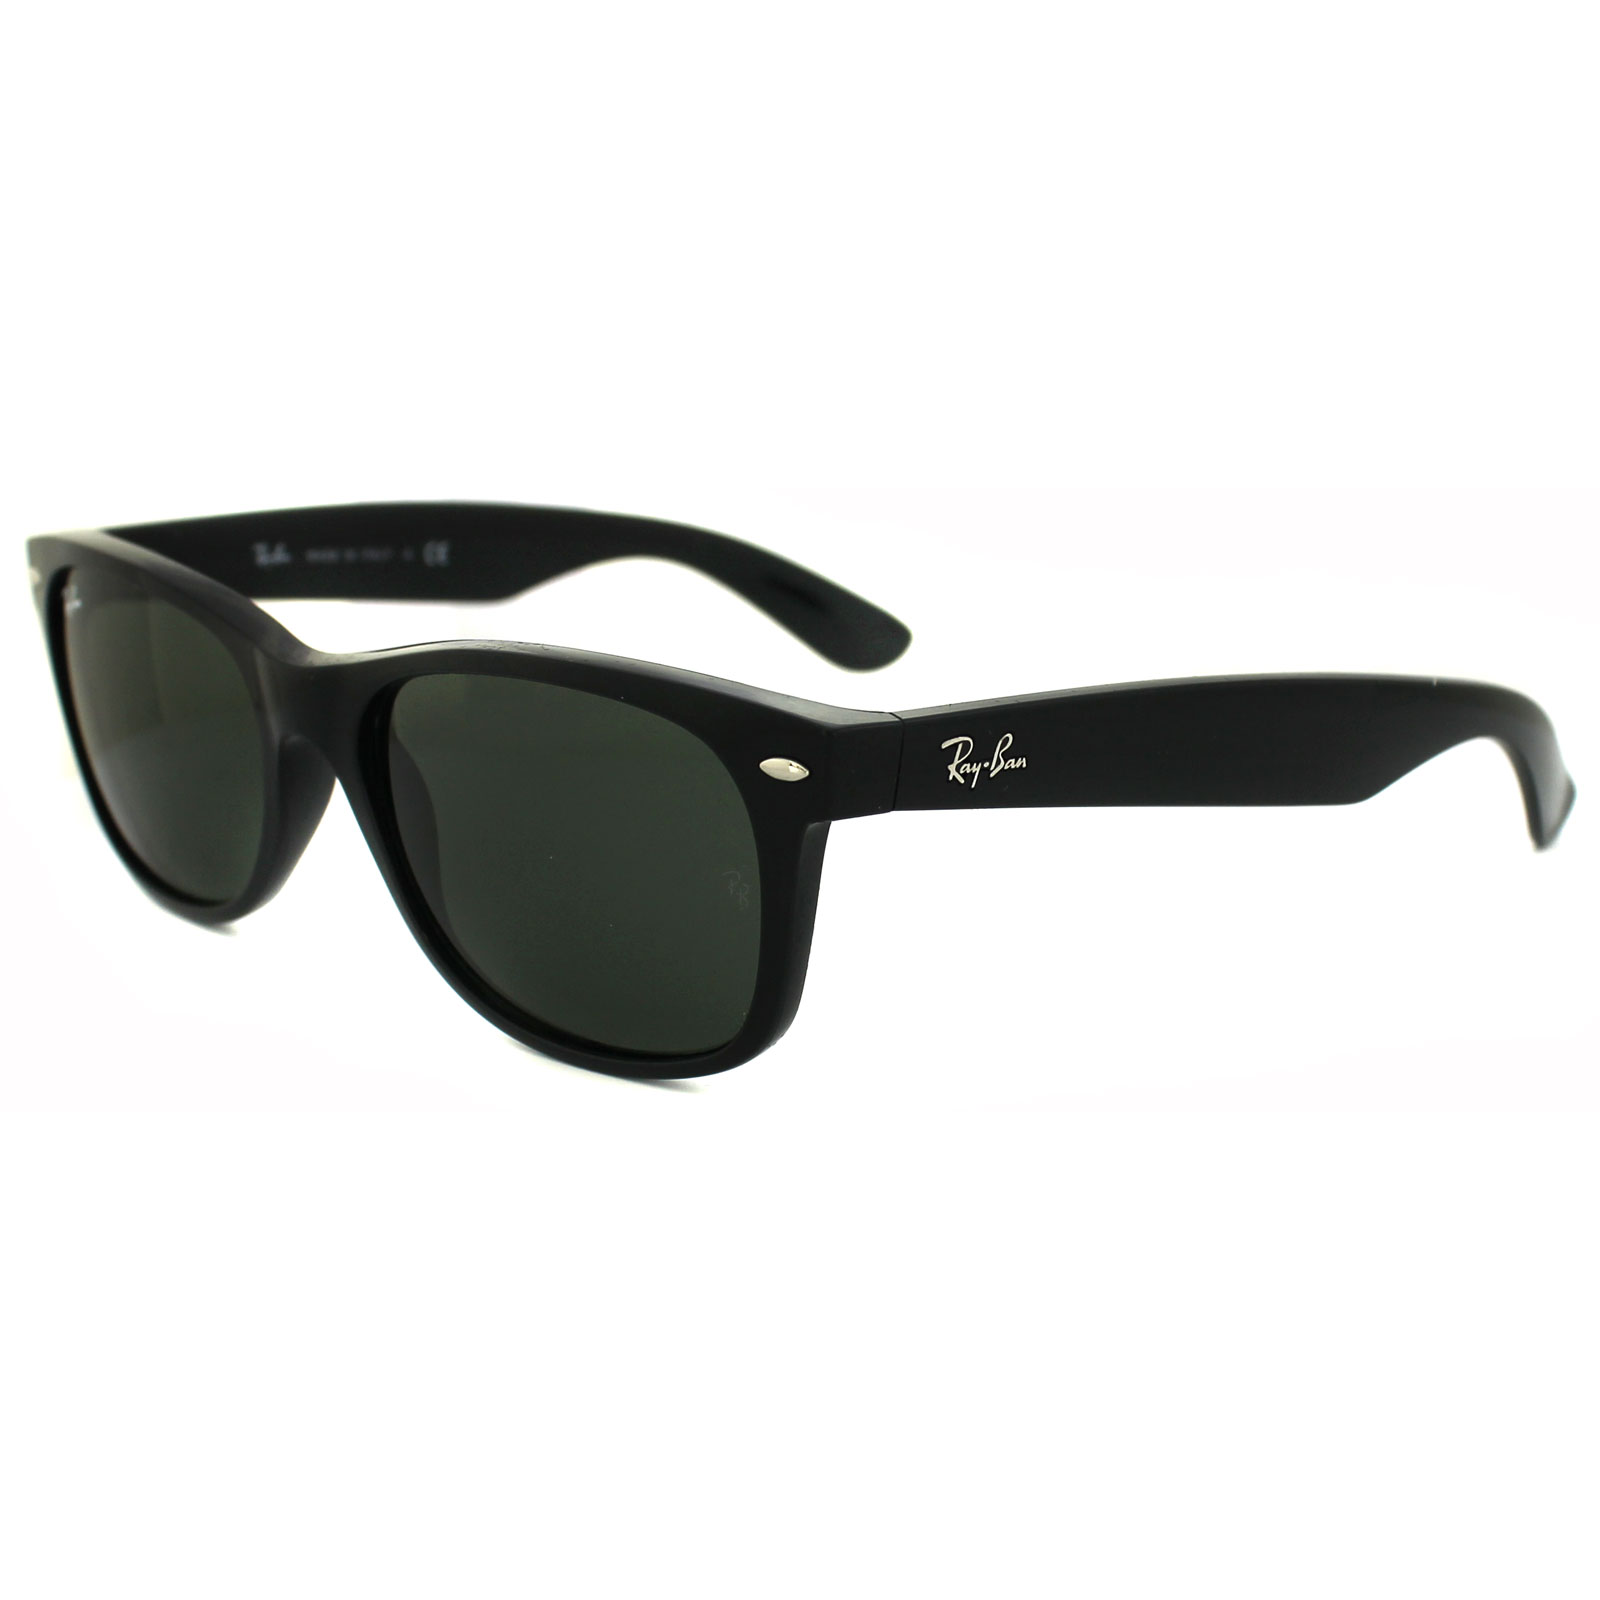 ray ban wayfarer sunglasses cheap uk  ray ban new wayfarer 2132 sunglasses